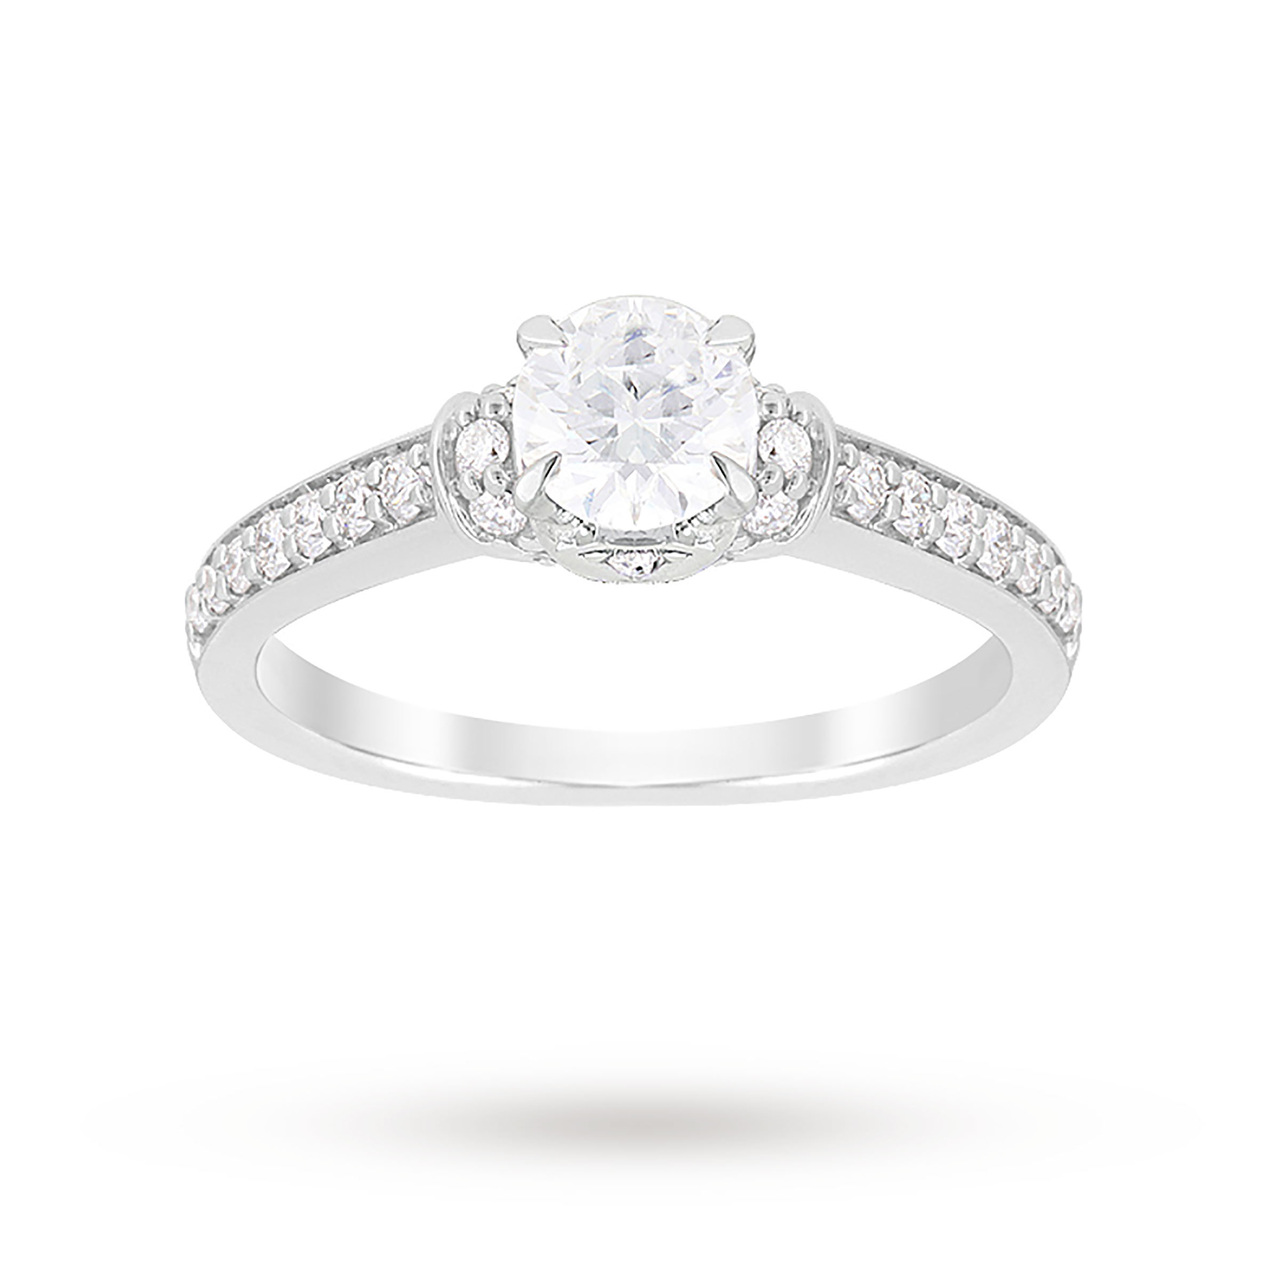 Jenny Packham Brilliant Cut 1.14 Carat Total Weight Diamond Art Deco Style Ring in Platinum